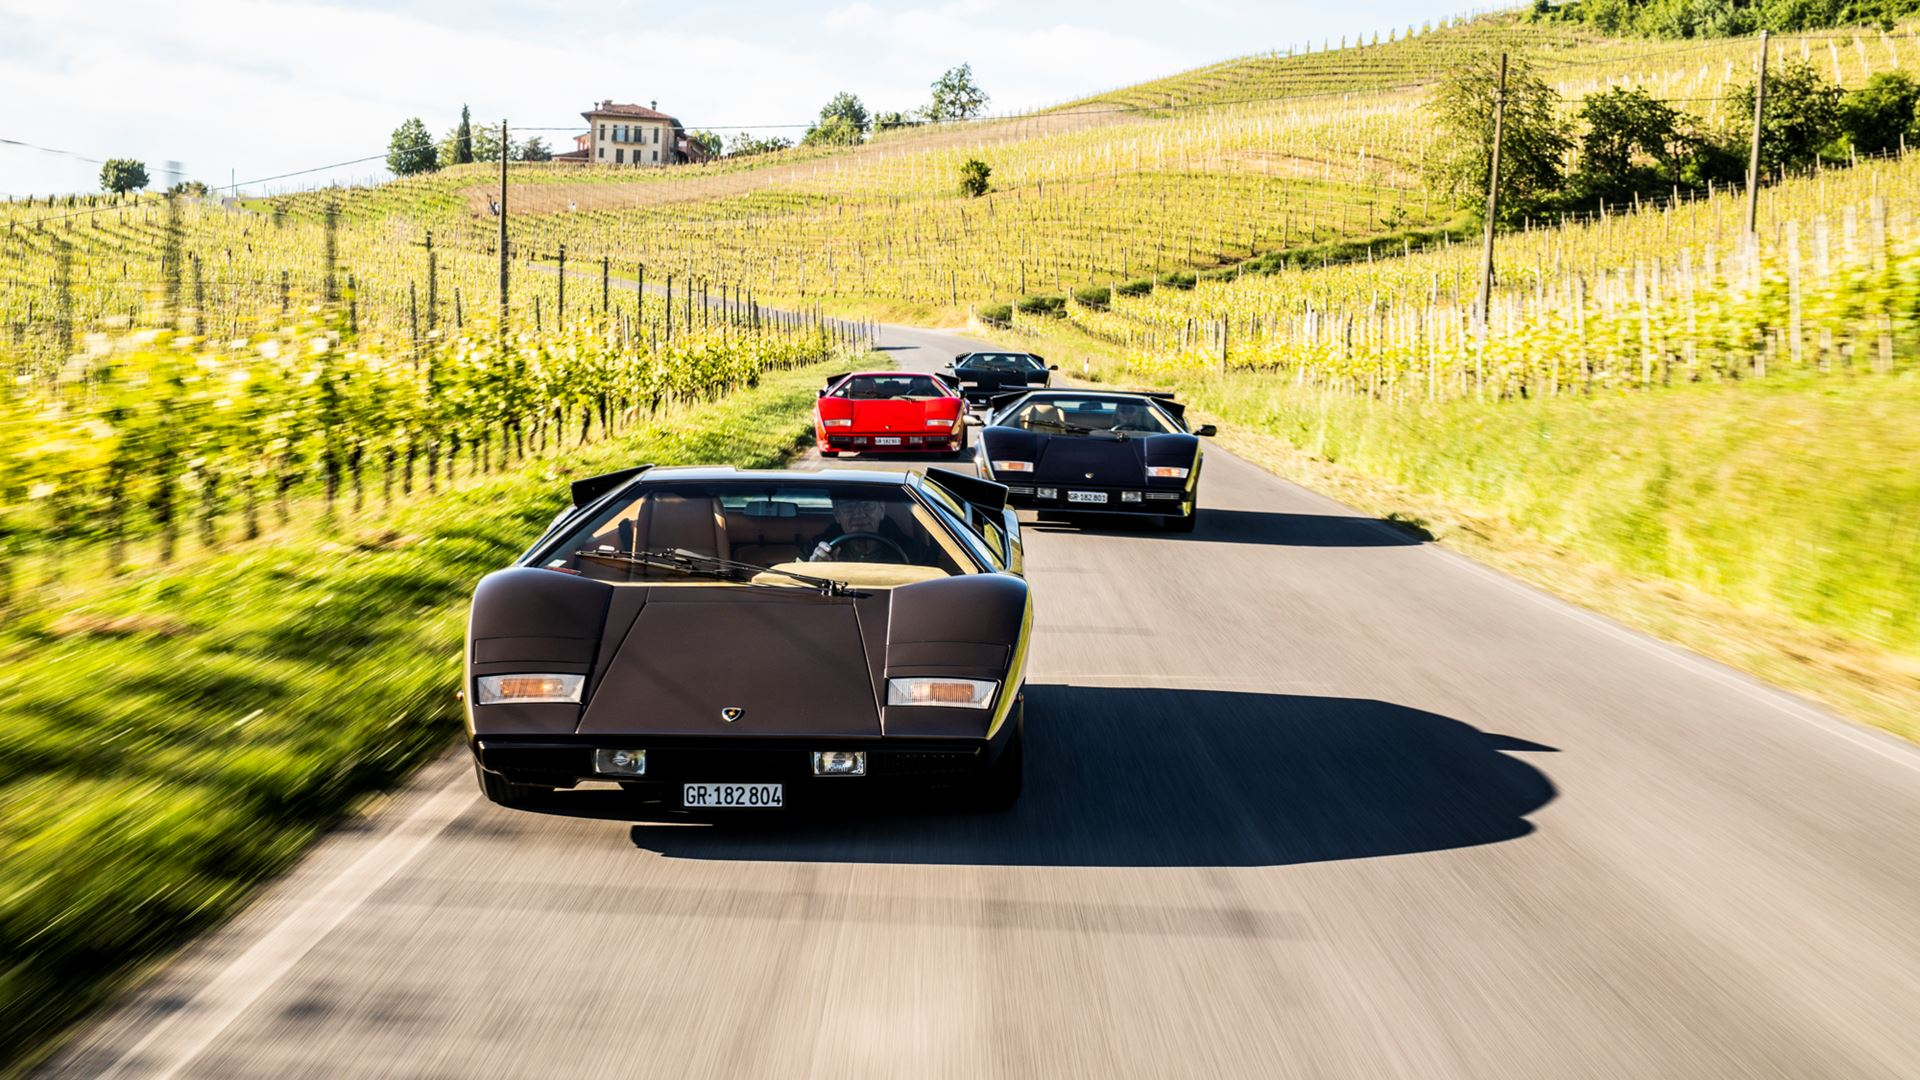 The legacy of the Lamborghini Countach in a video series. From the idea car, the LP 500 of 1971, to five generations spanning seventeen years - Image 6